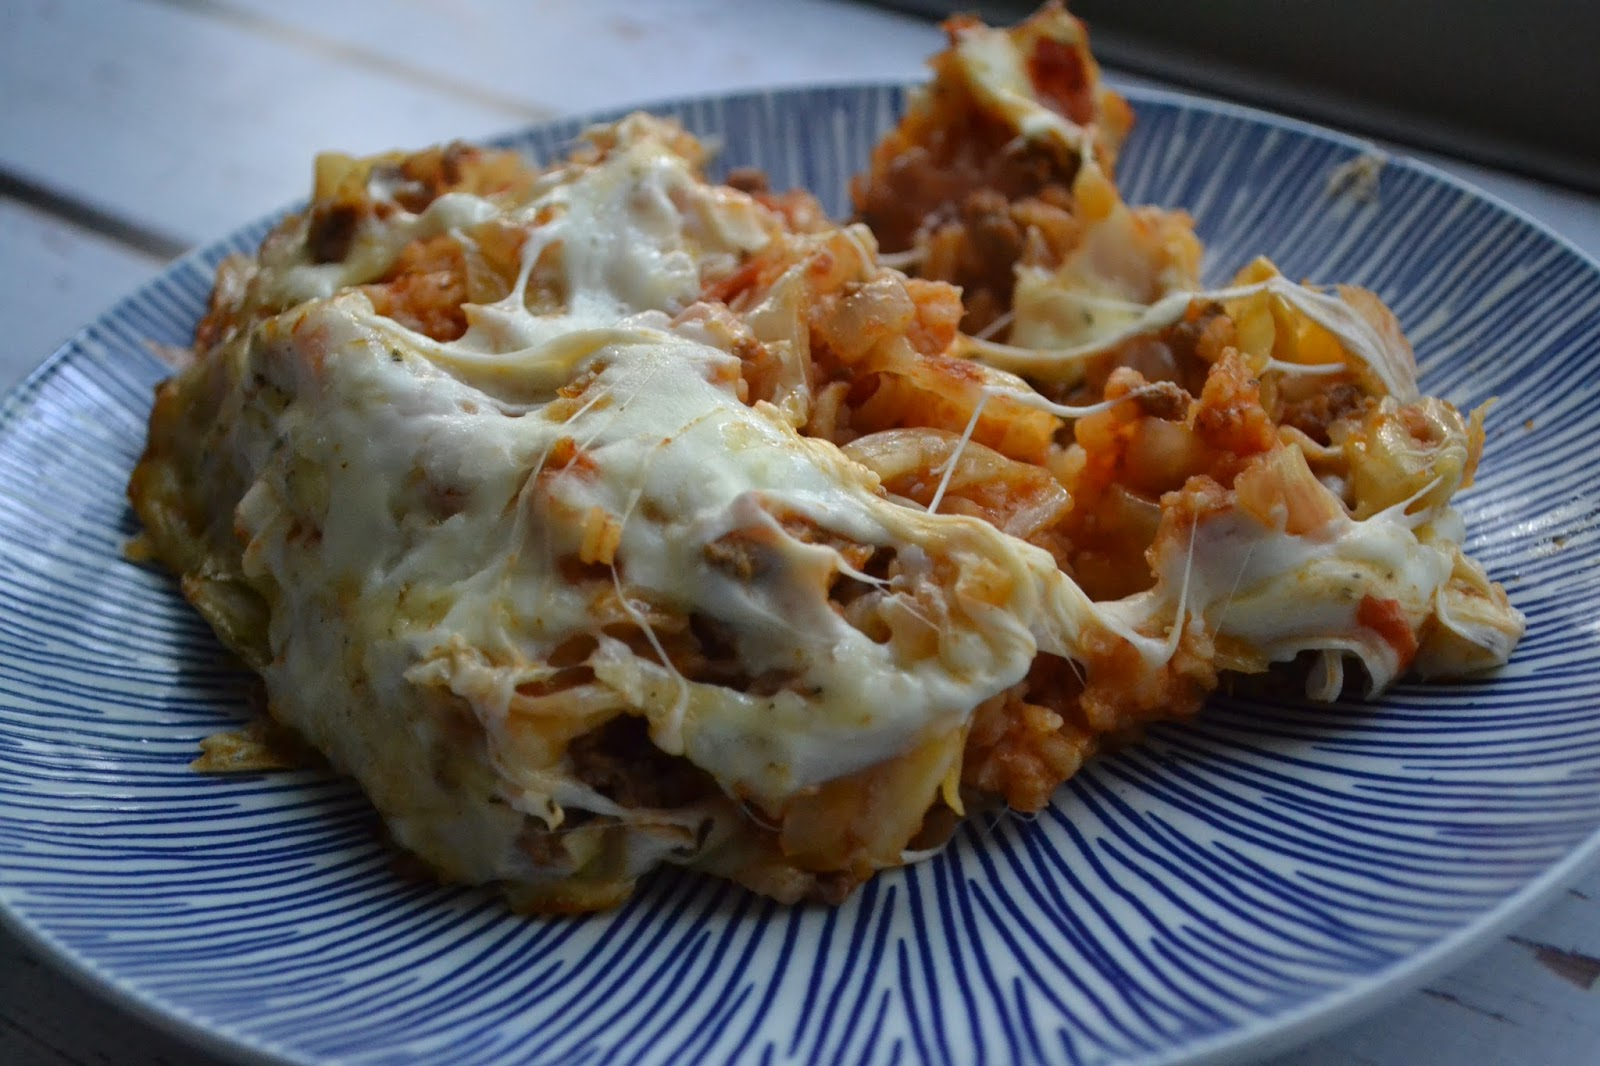 Making Miracles: Deconstructed Stuffed Cabbage Casserole